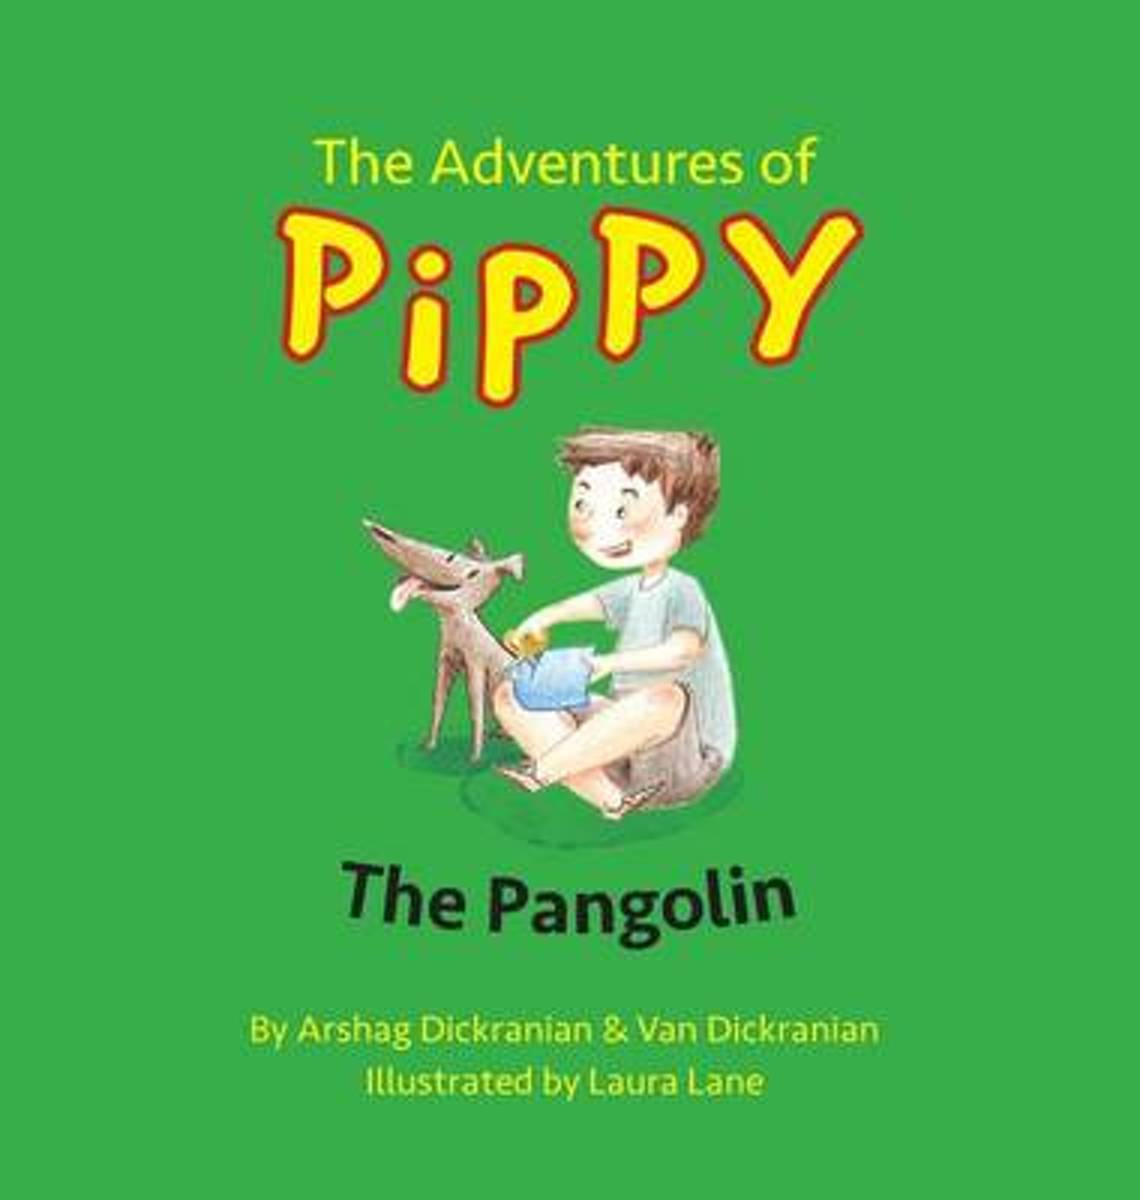 The Adventures of Pippy